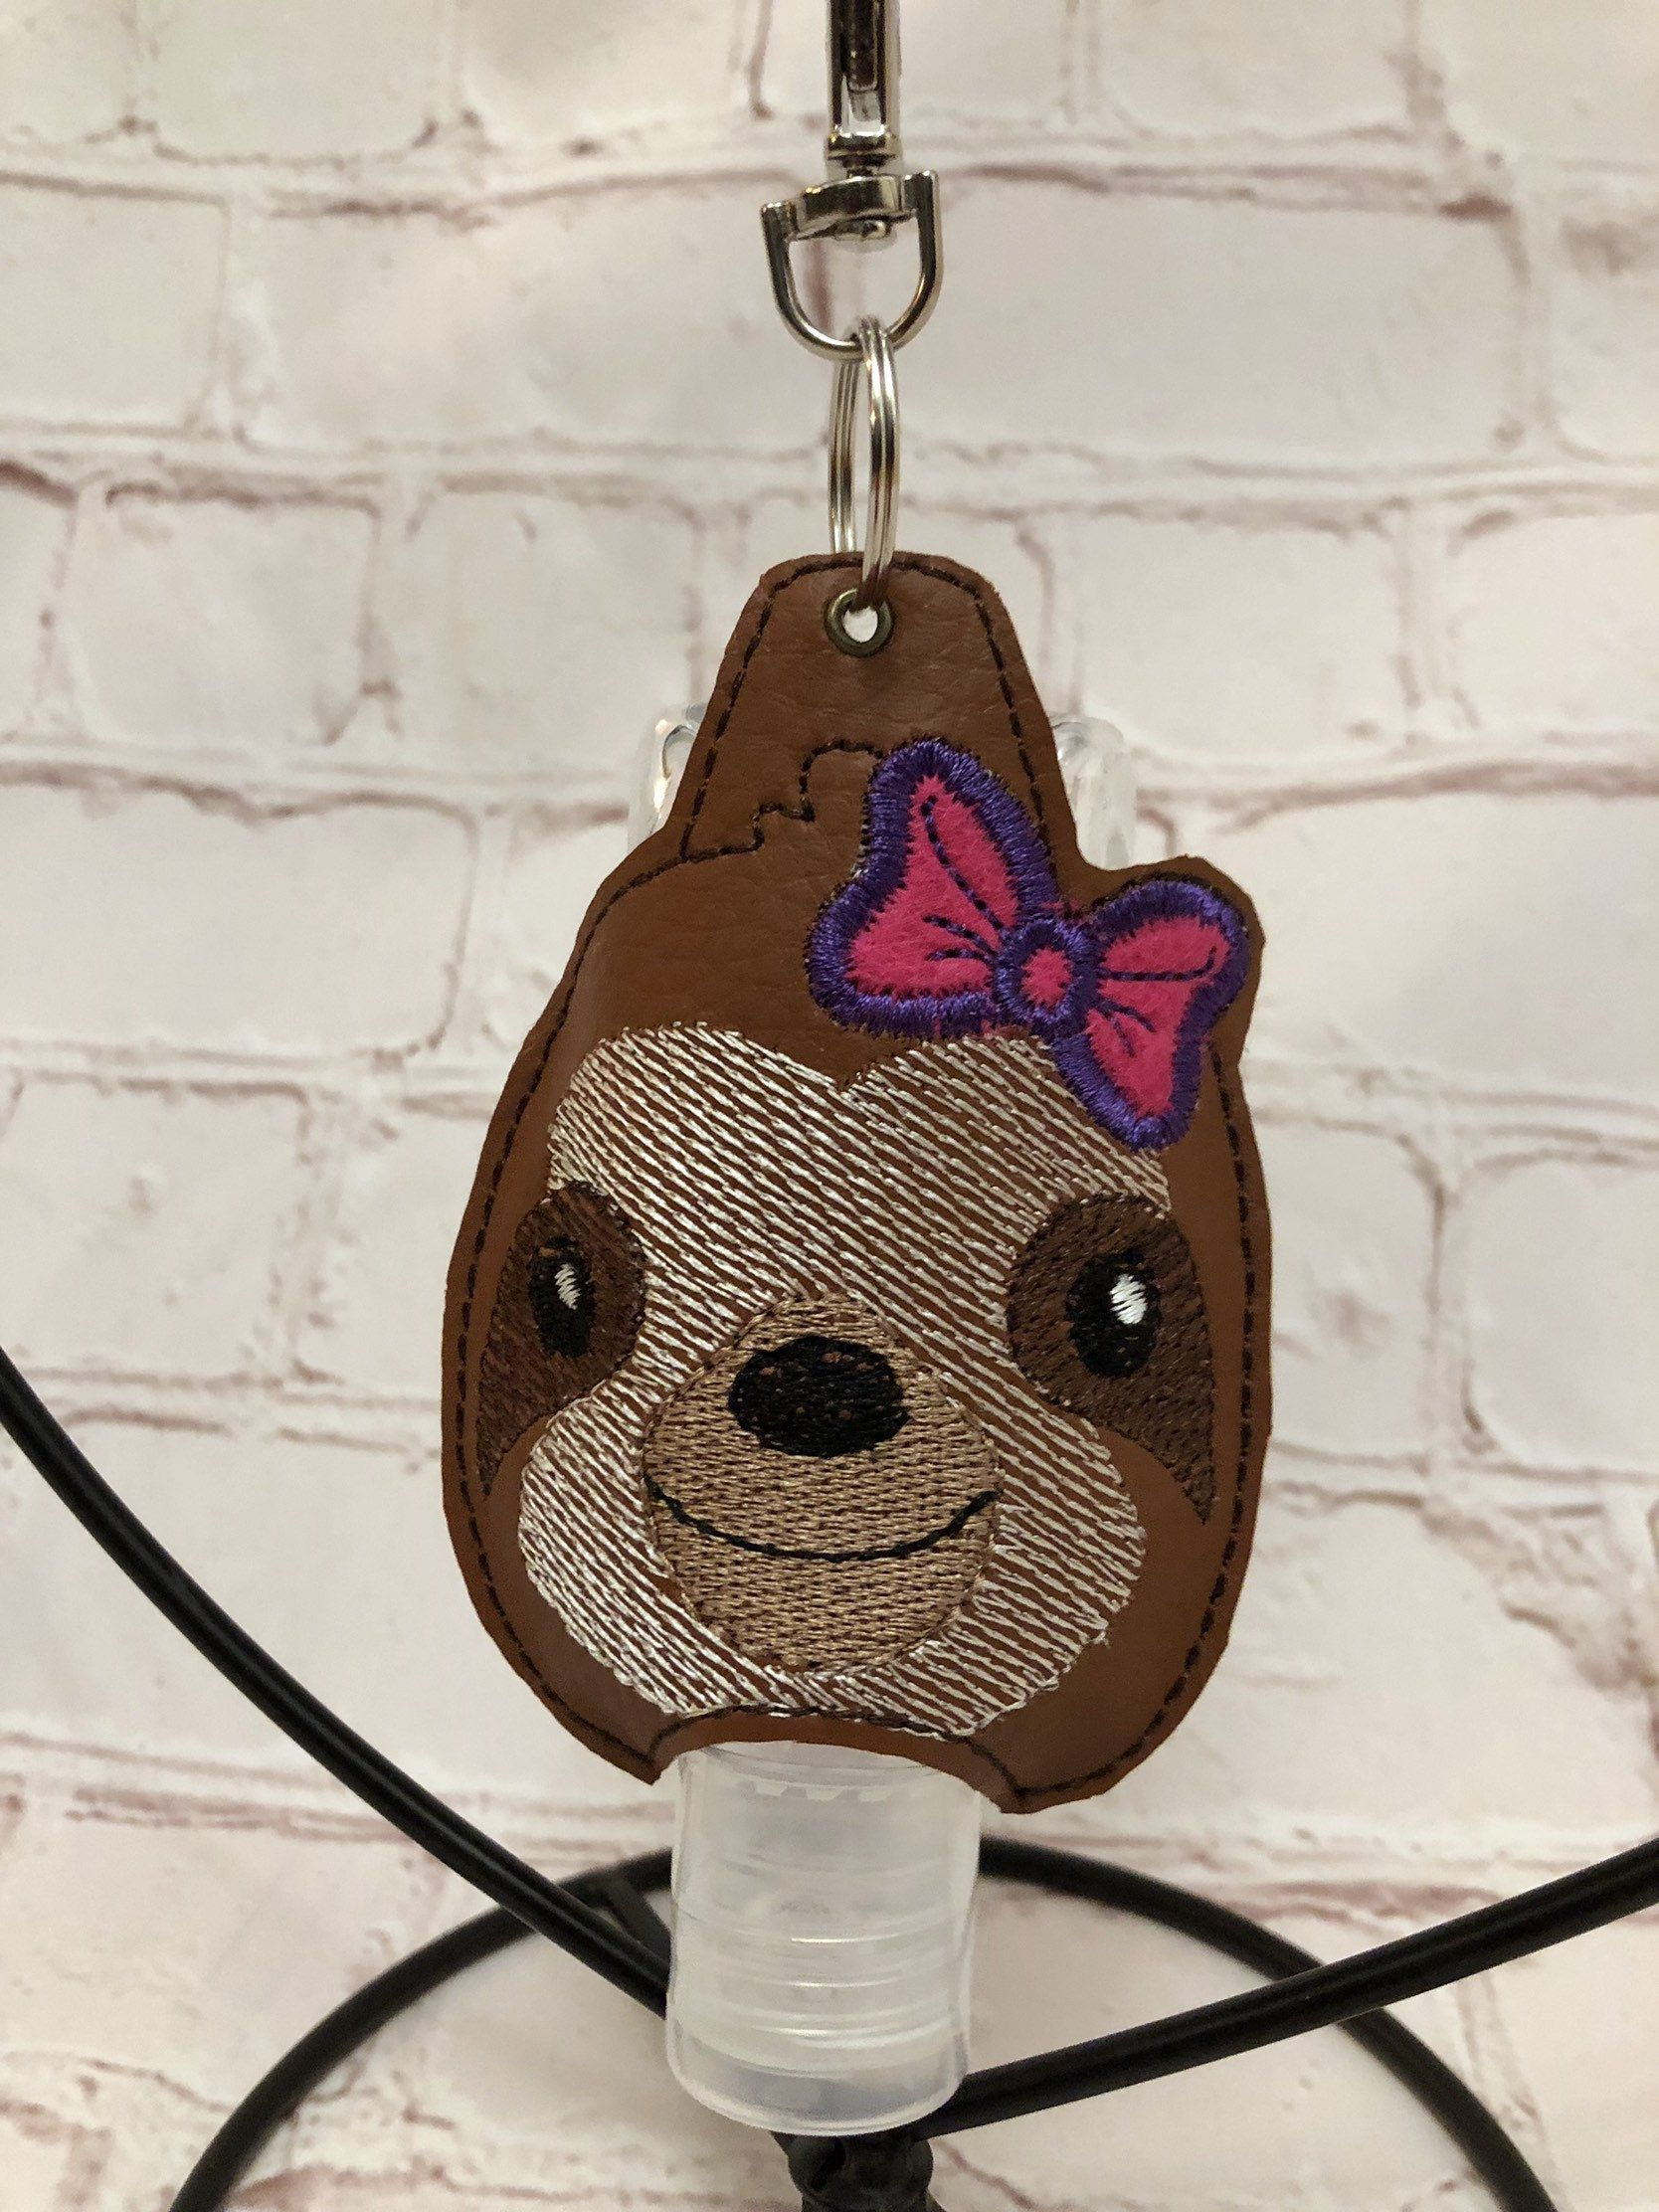 Sloth Hand Sanitiser Holder With Bag Clip Hand Sanitizer Holder